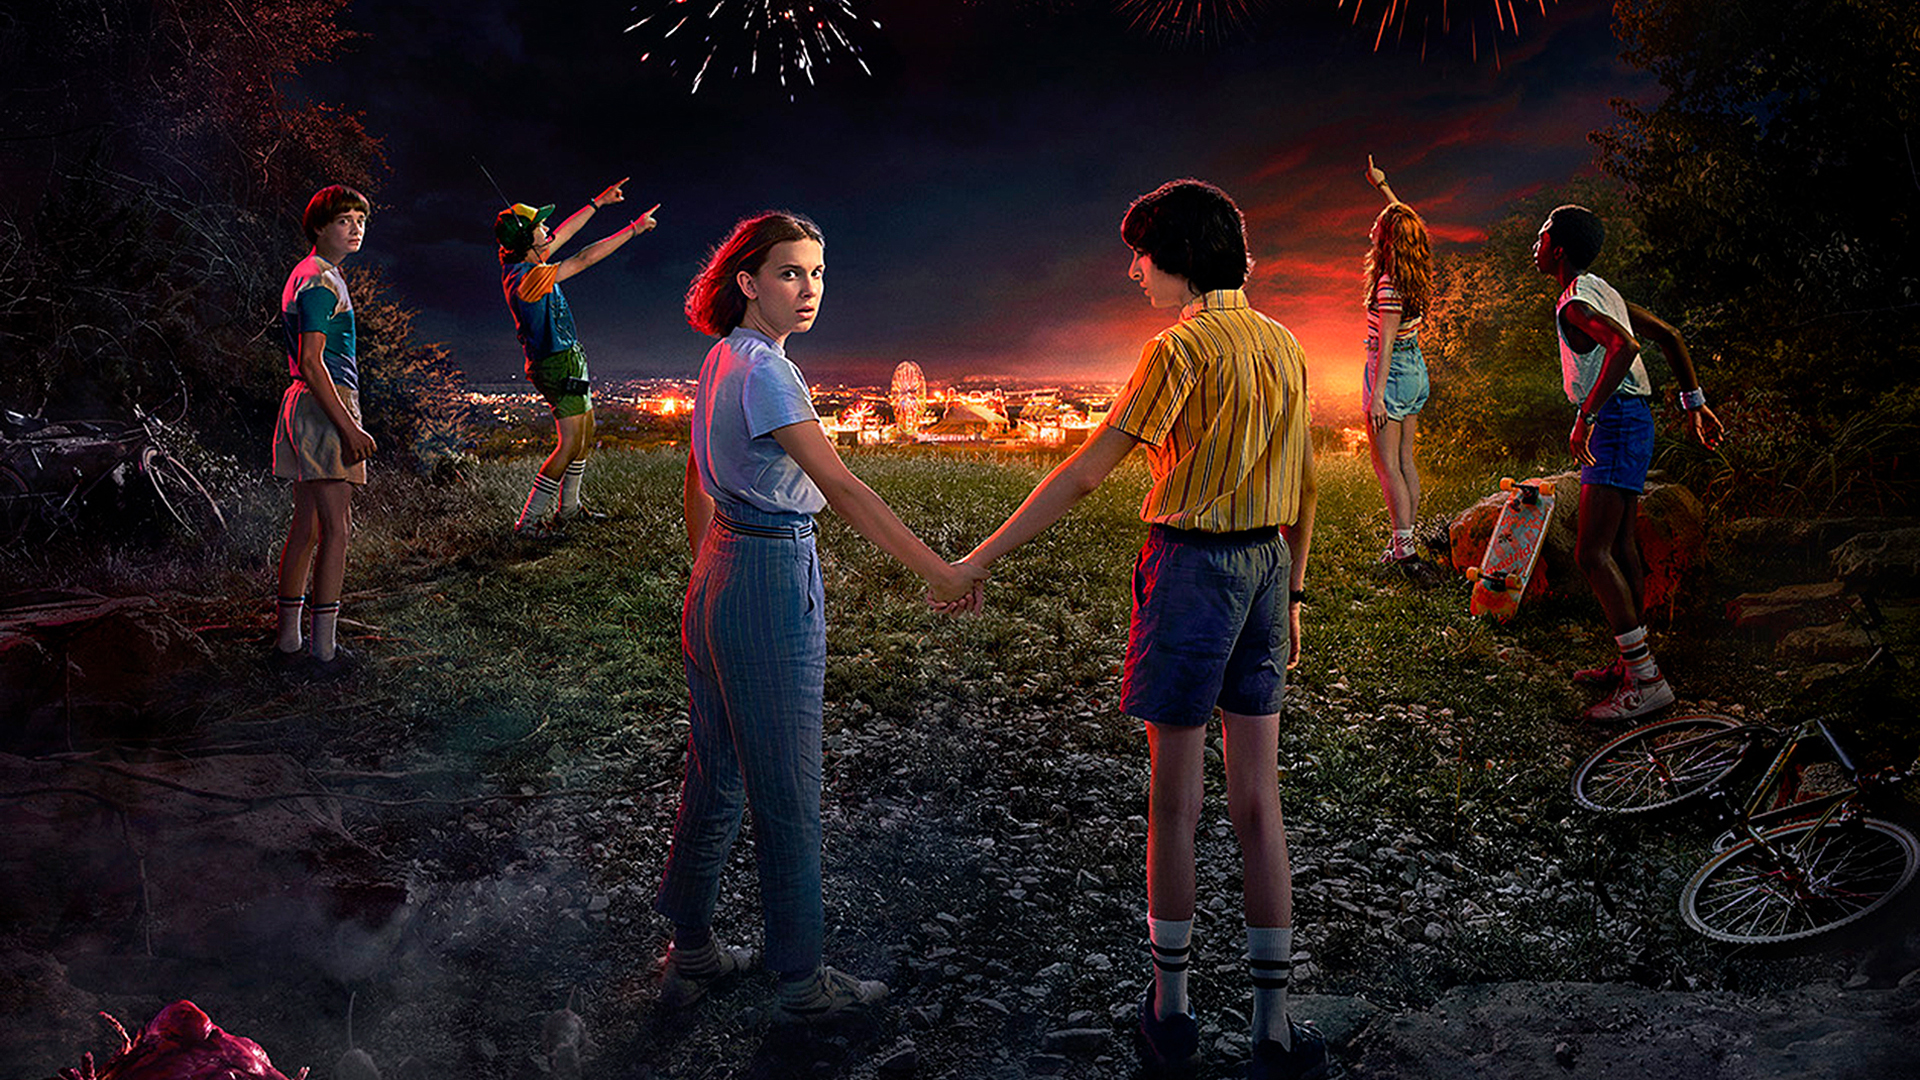 Iphone 5s Wallpaper Anime Stranger Things 3 2019 Wallpapers Hd Wallpapers Id 27177